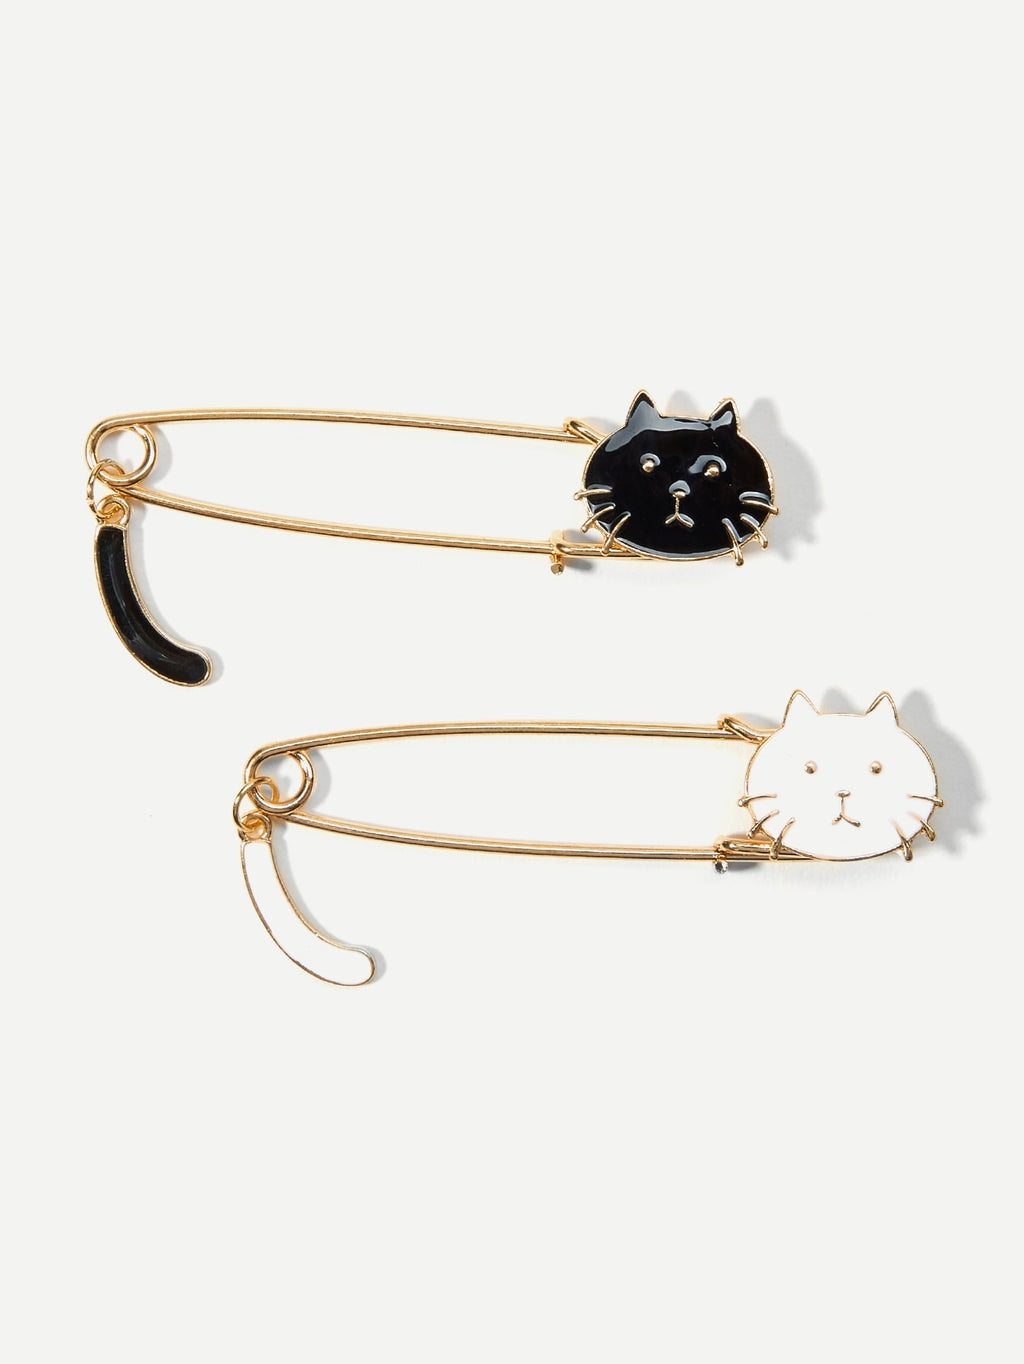 Womens Brooches - Cat Design Brooch Set 2Pcs